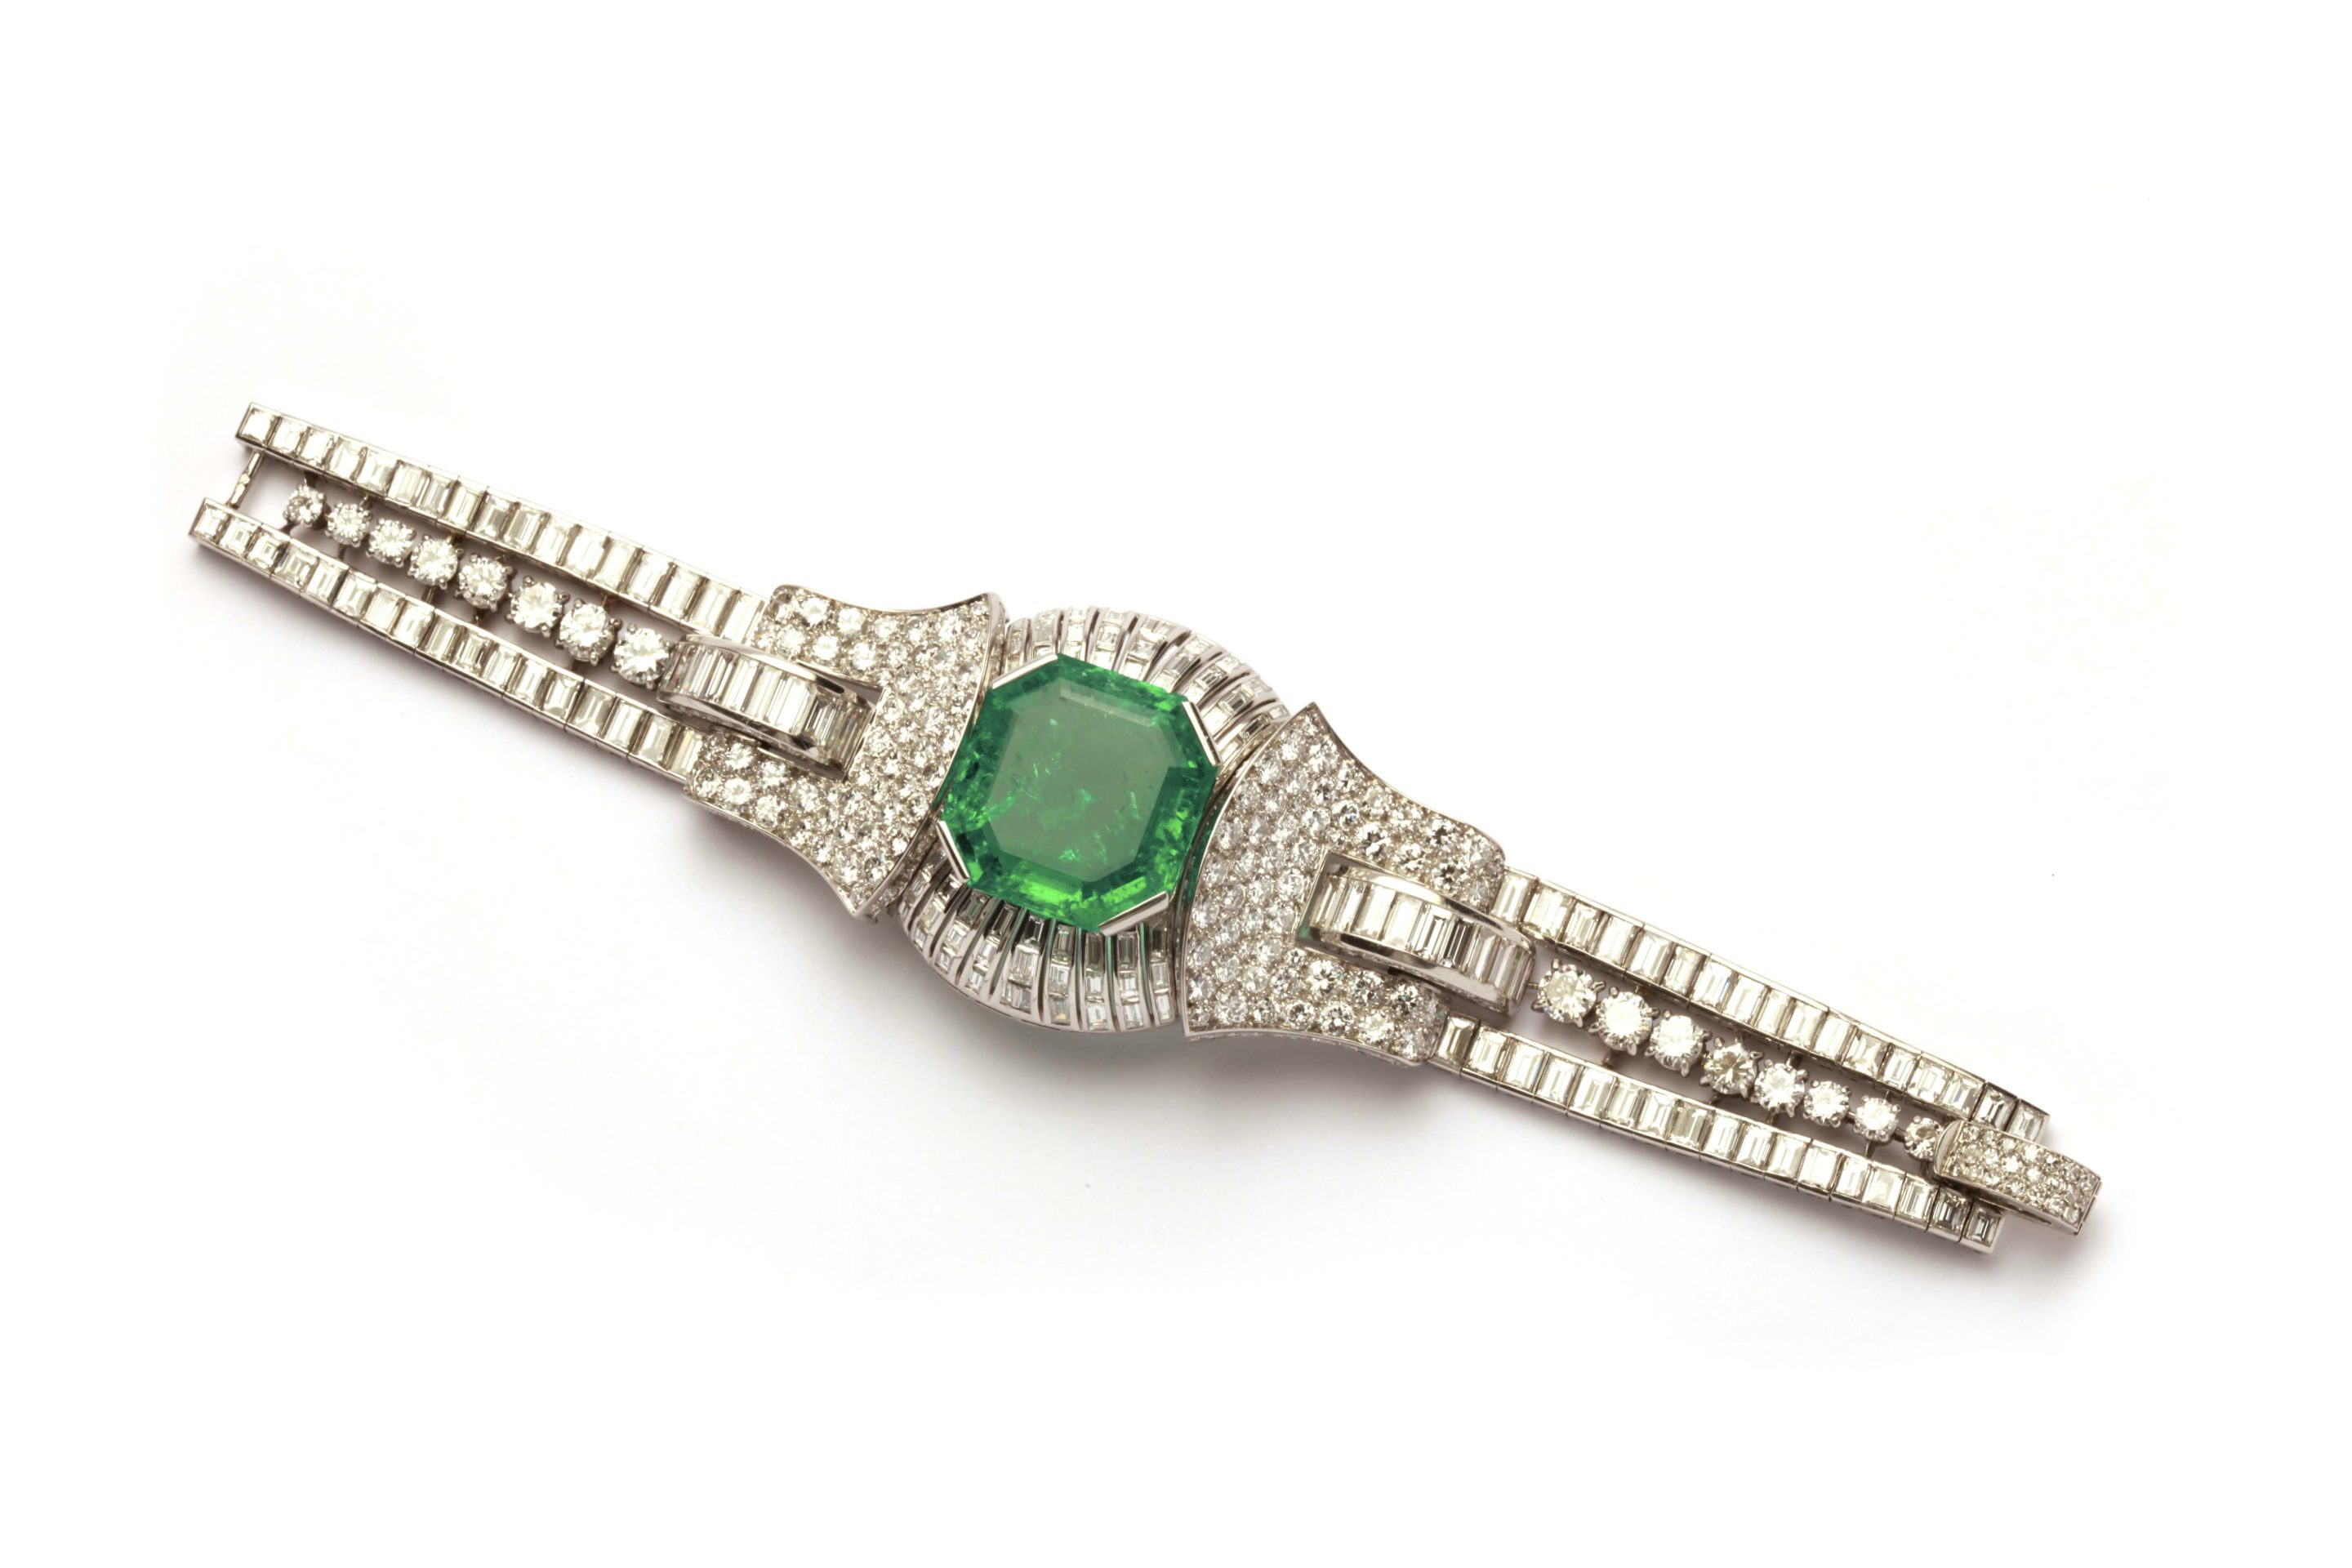 link david products webb bracelets jewelry enlarged diamond bracelet emerald and